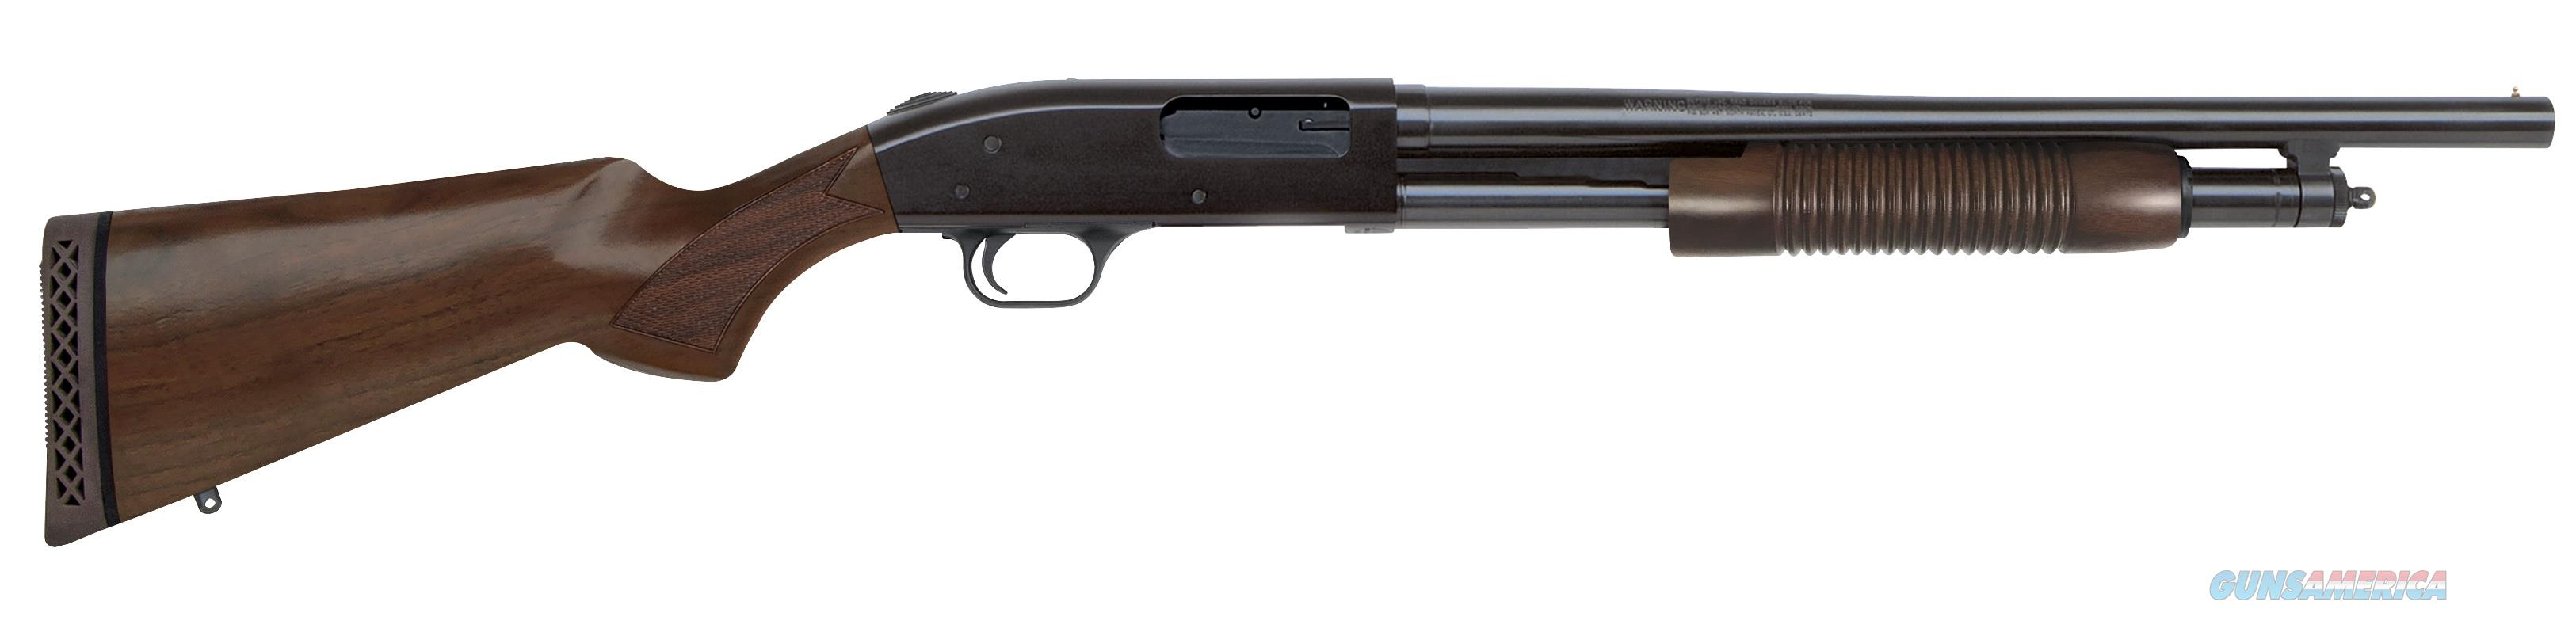 "Mossberg 500 Retrograde 12 GA 18.5"" Walnut 50429  Guns > Shotguns > Mossberg Shotguns > Pump > Tactical"